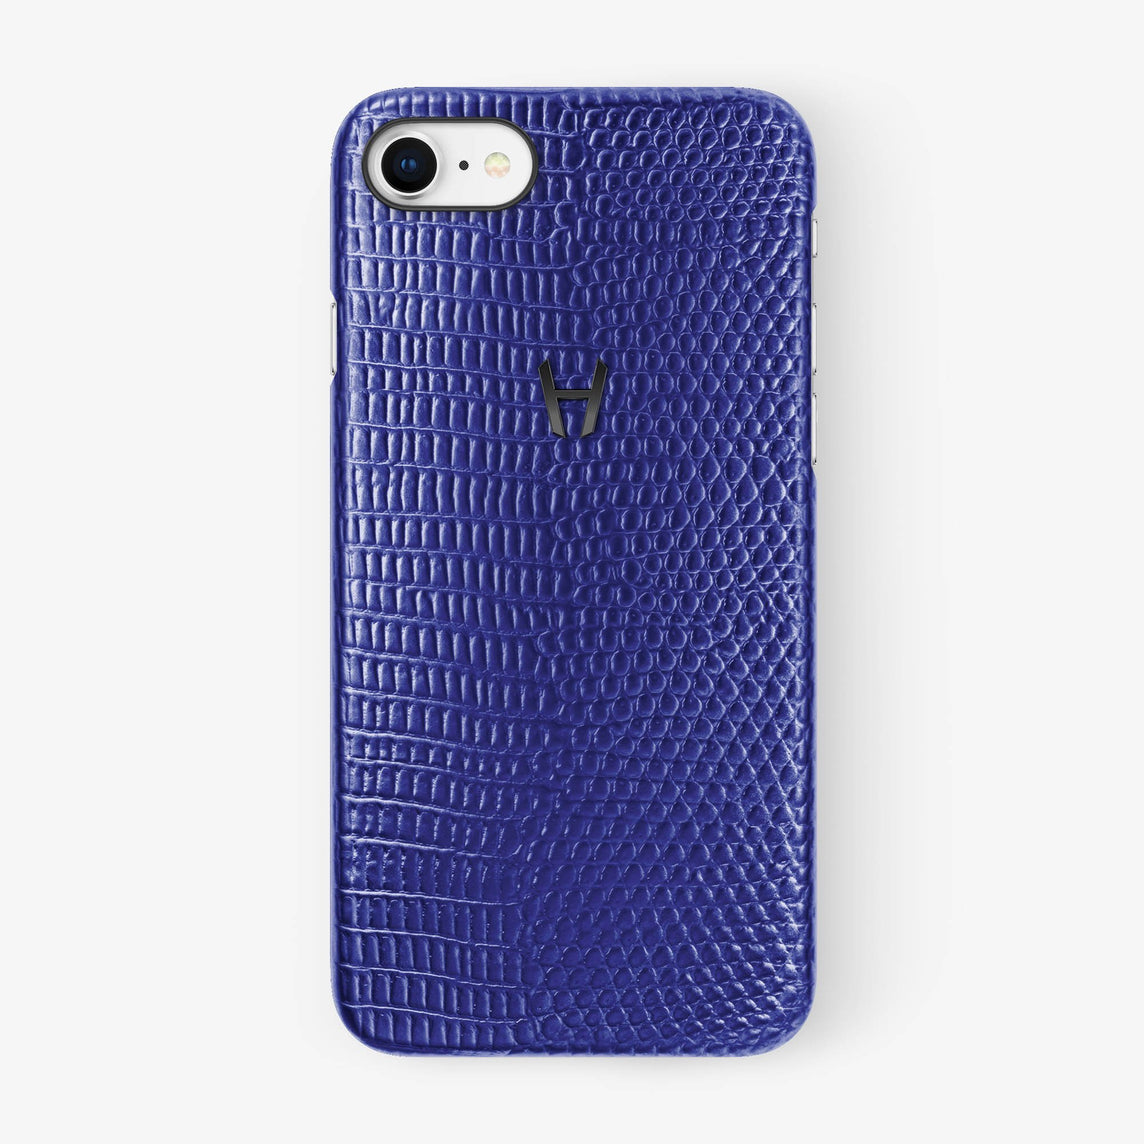 Blue Lizard iPhone Case for iPhone 7/8 finishing black - Hadoro Luxury Cases